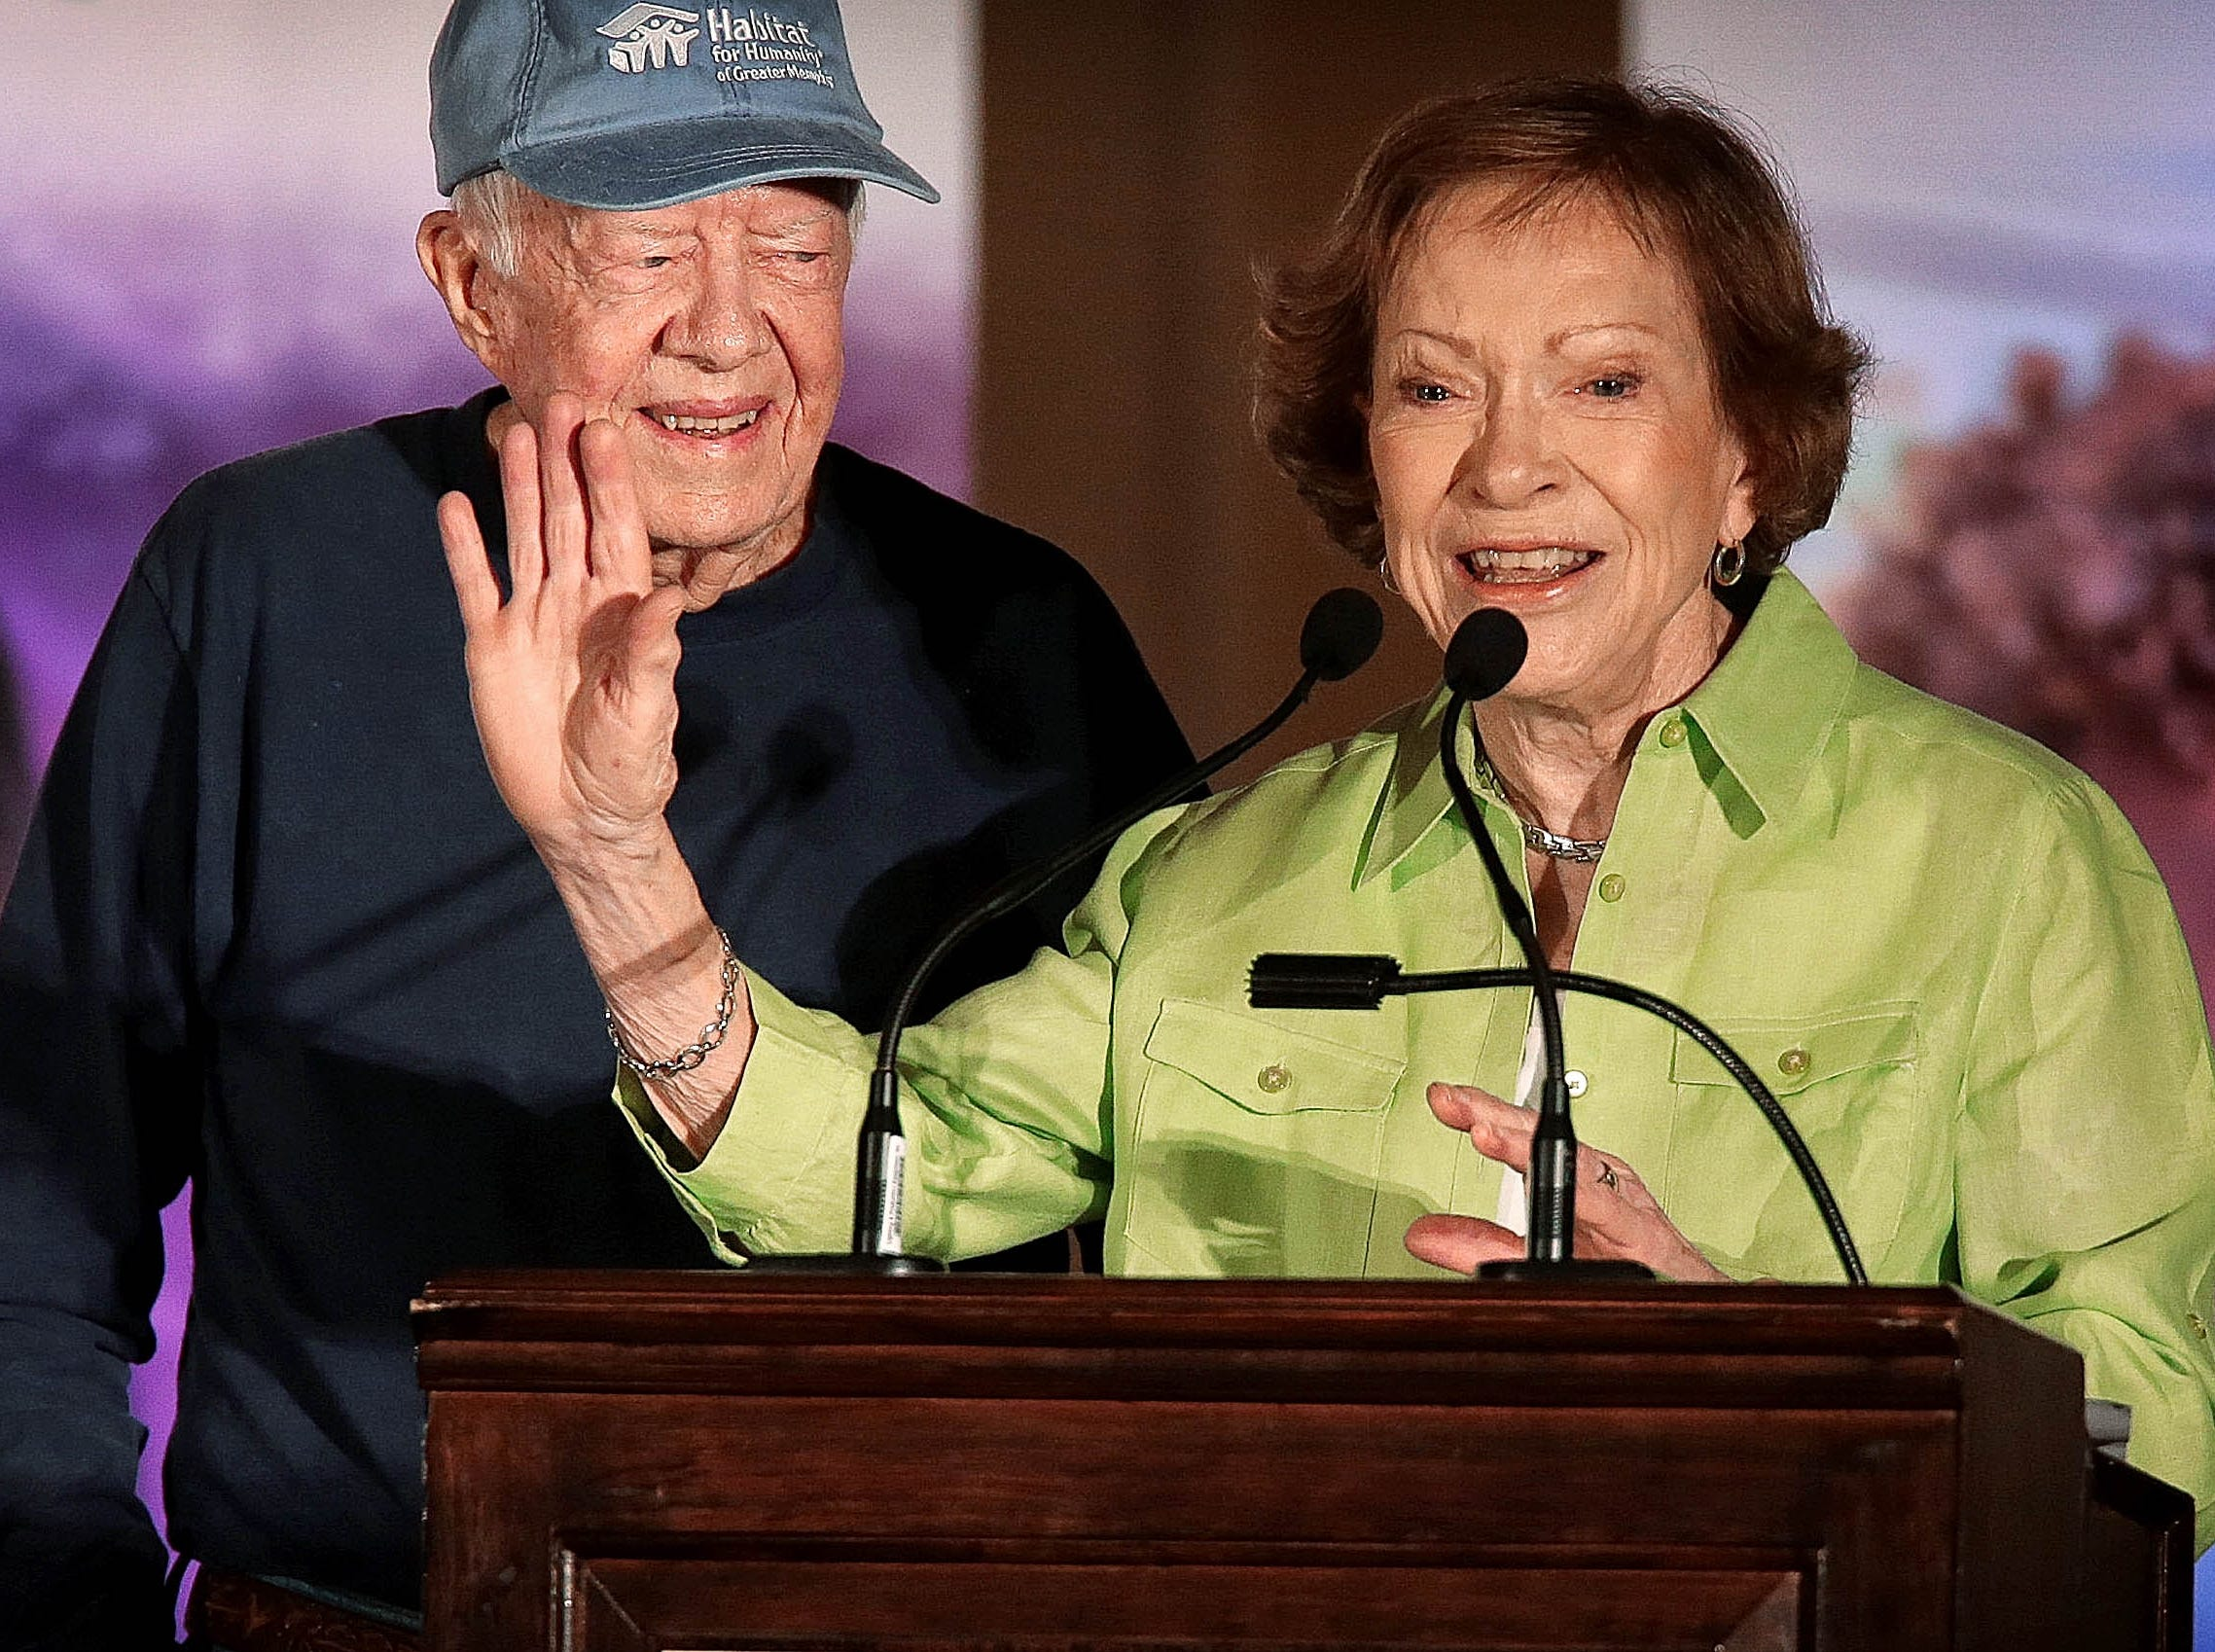 Former President Jimmy Carter and First Lady Rosalynn Carter talk to Habitat For Humanity volunteers and community leaders during a launch party for the Carter Work Project at the Peabody Hotel on Aug. 21, 2016.